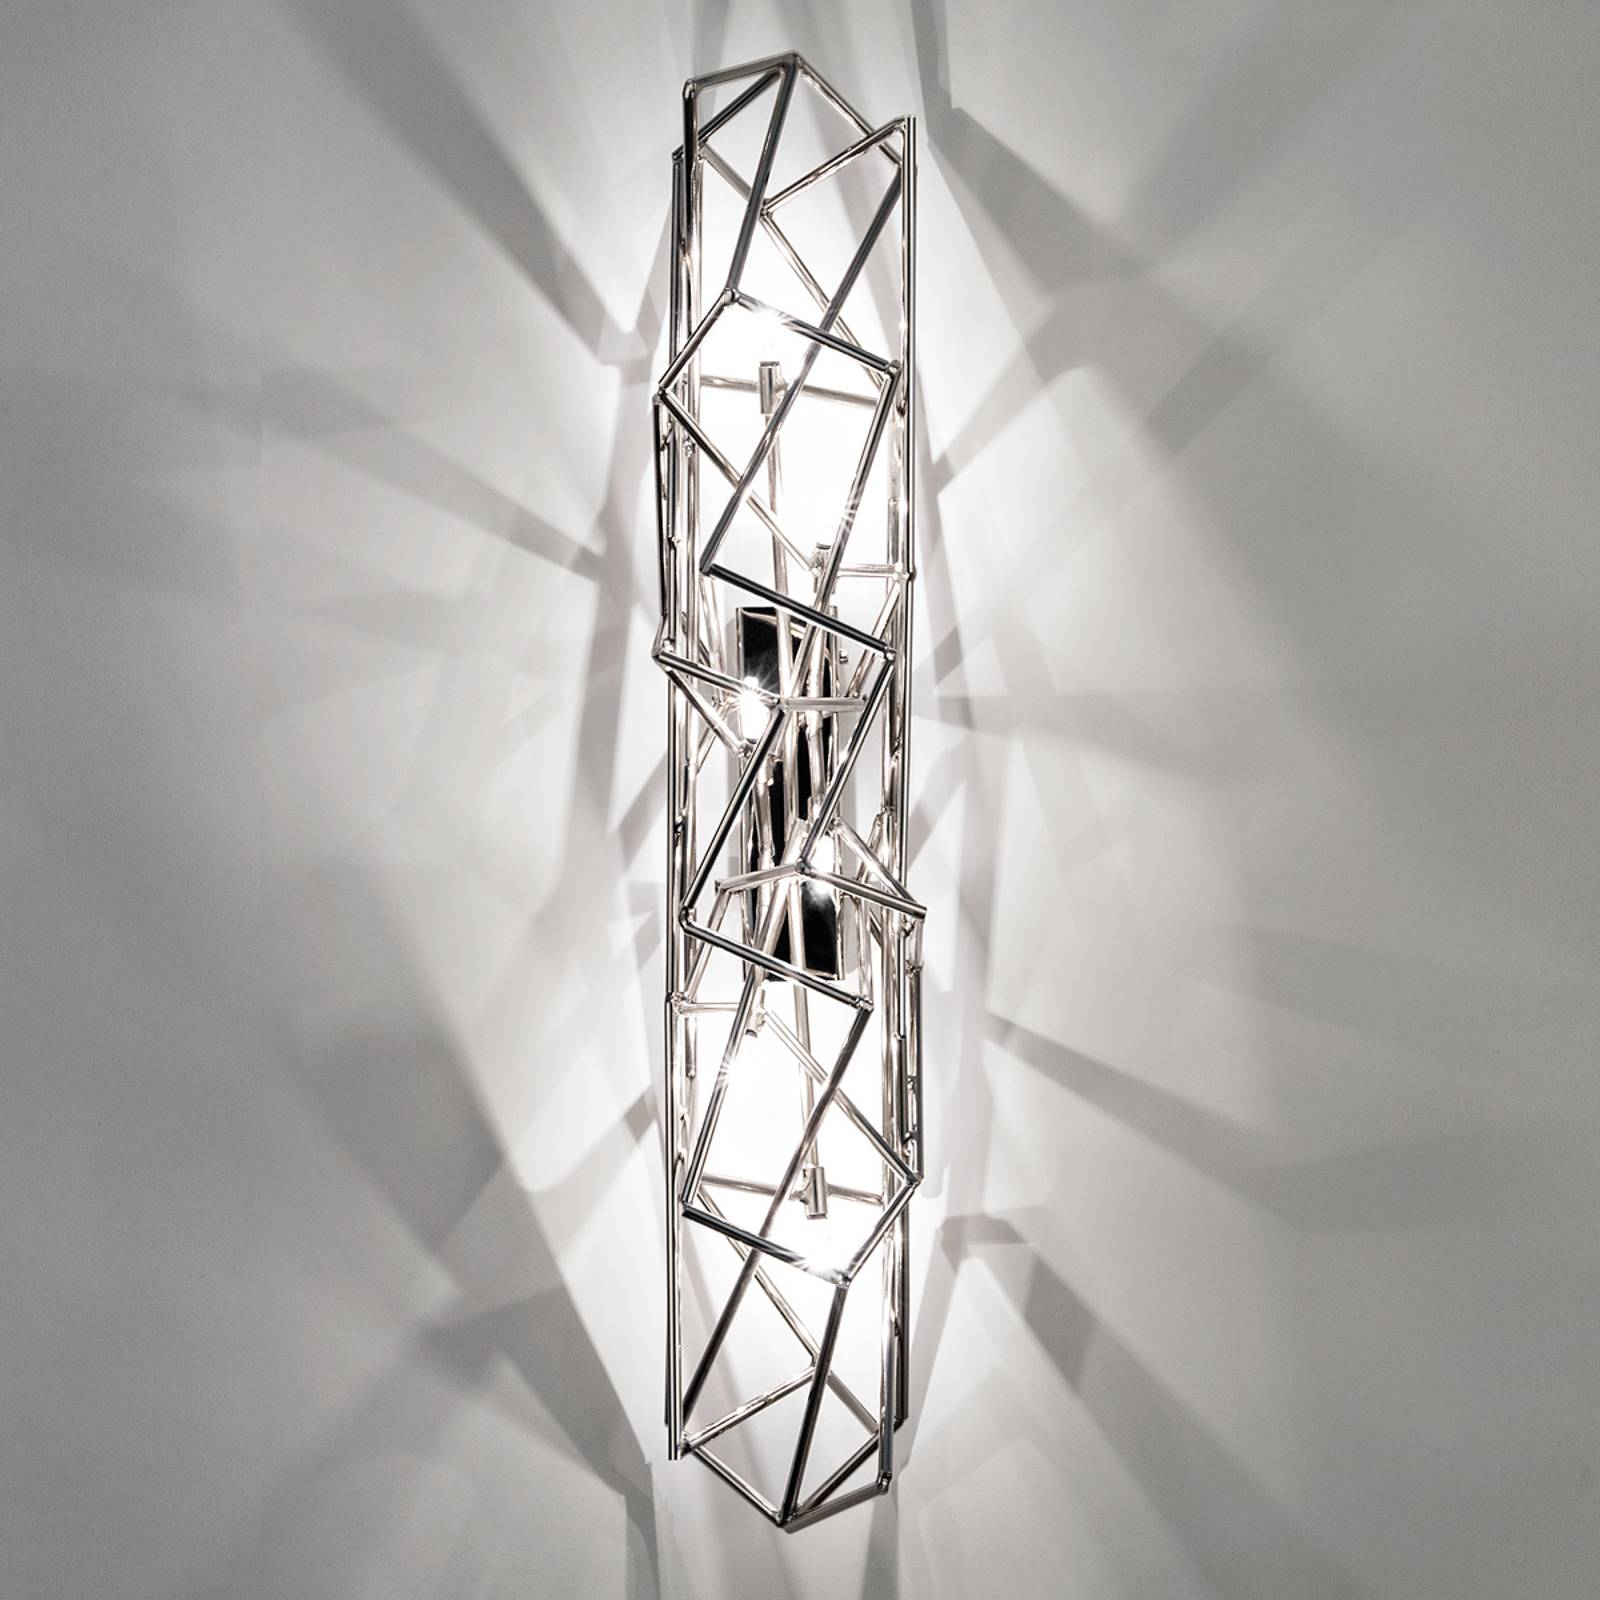 Eye-catching Etoile wall light from Terzani